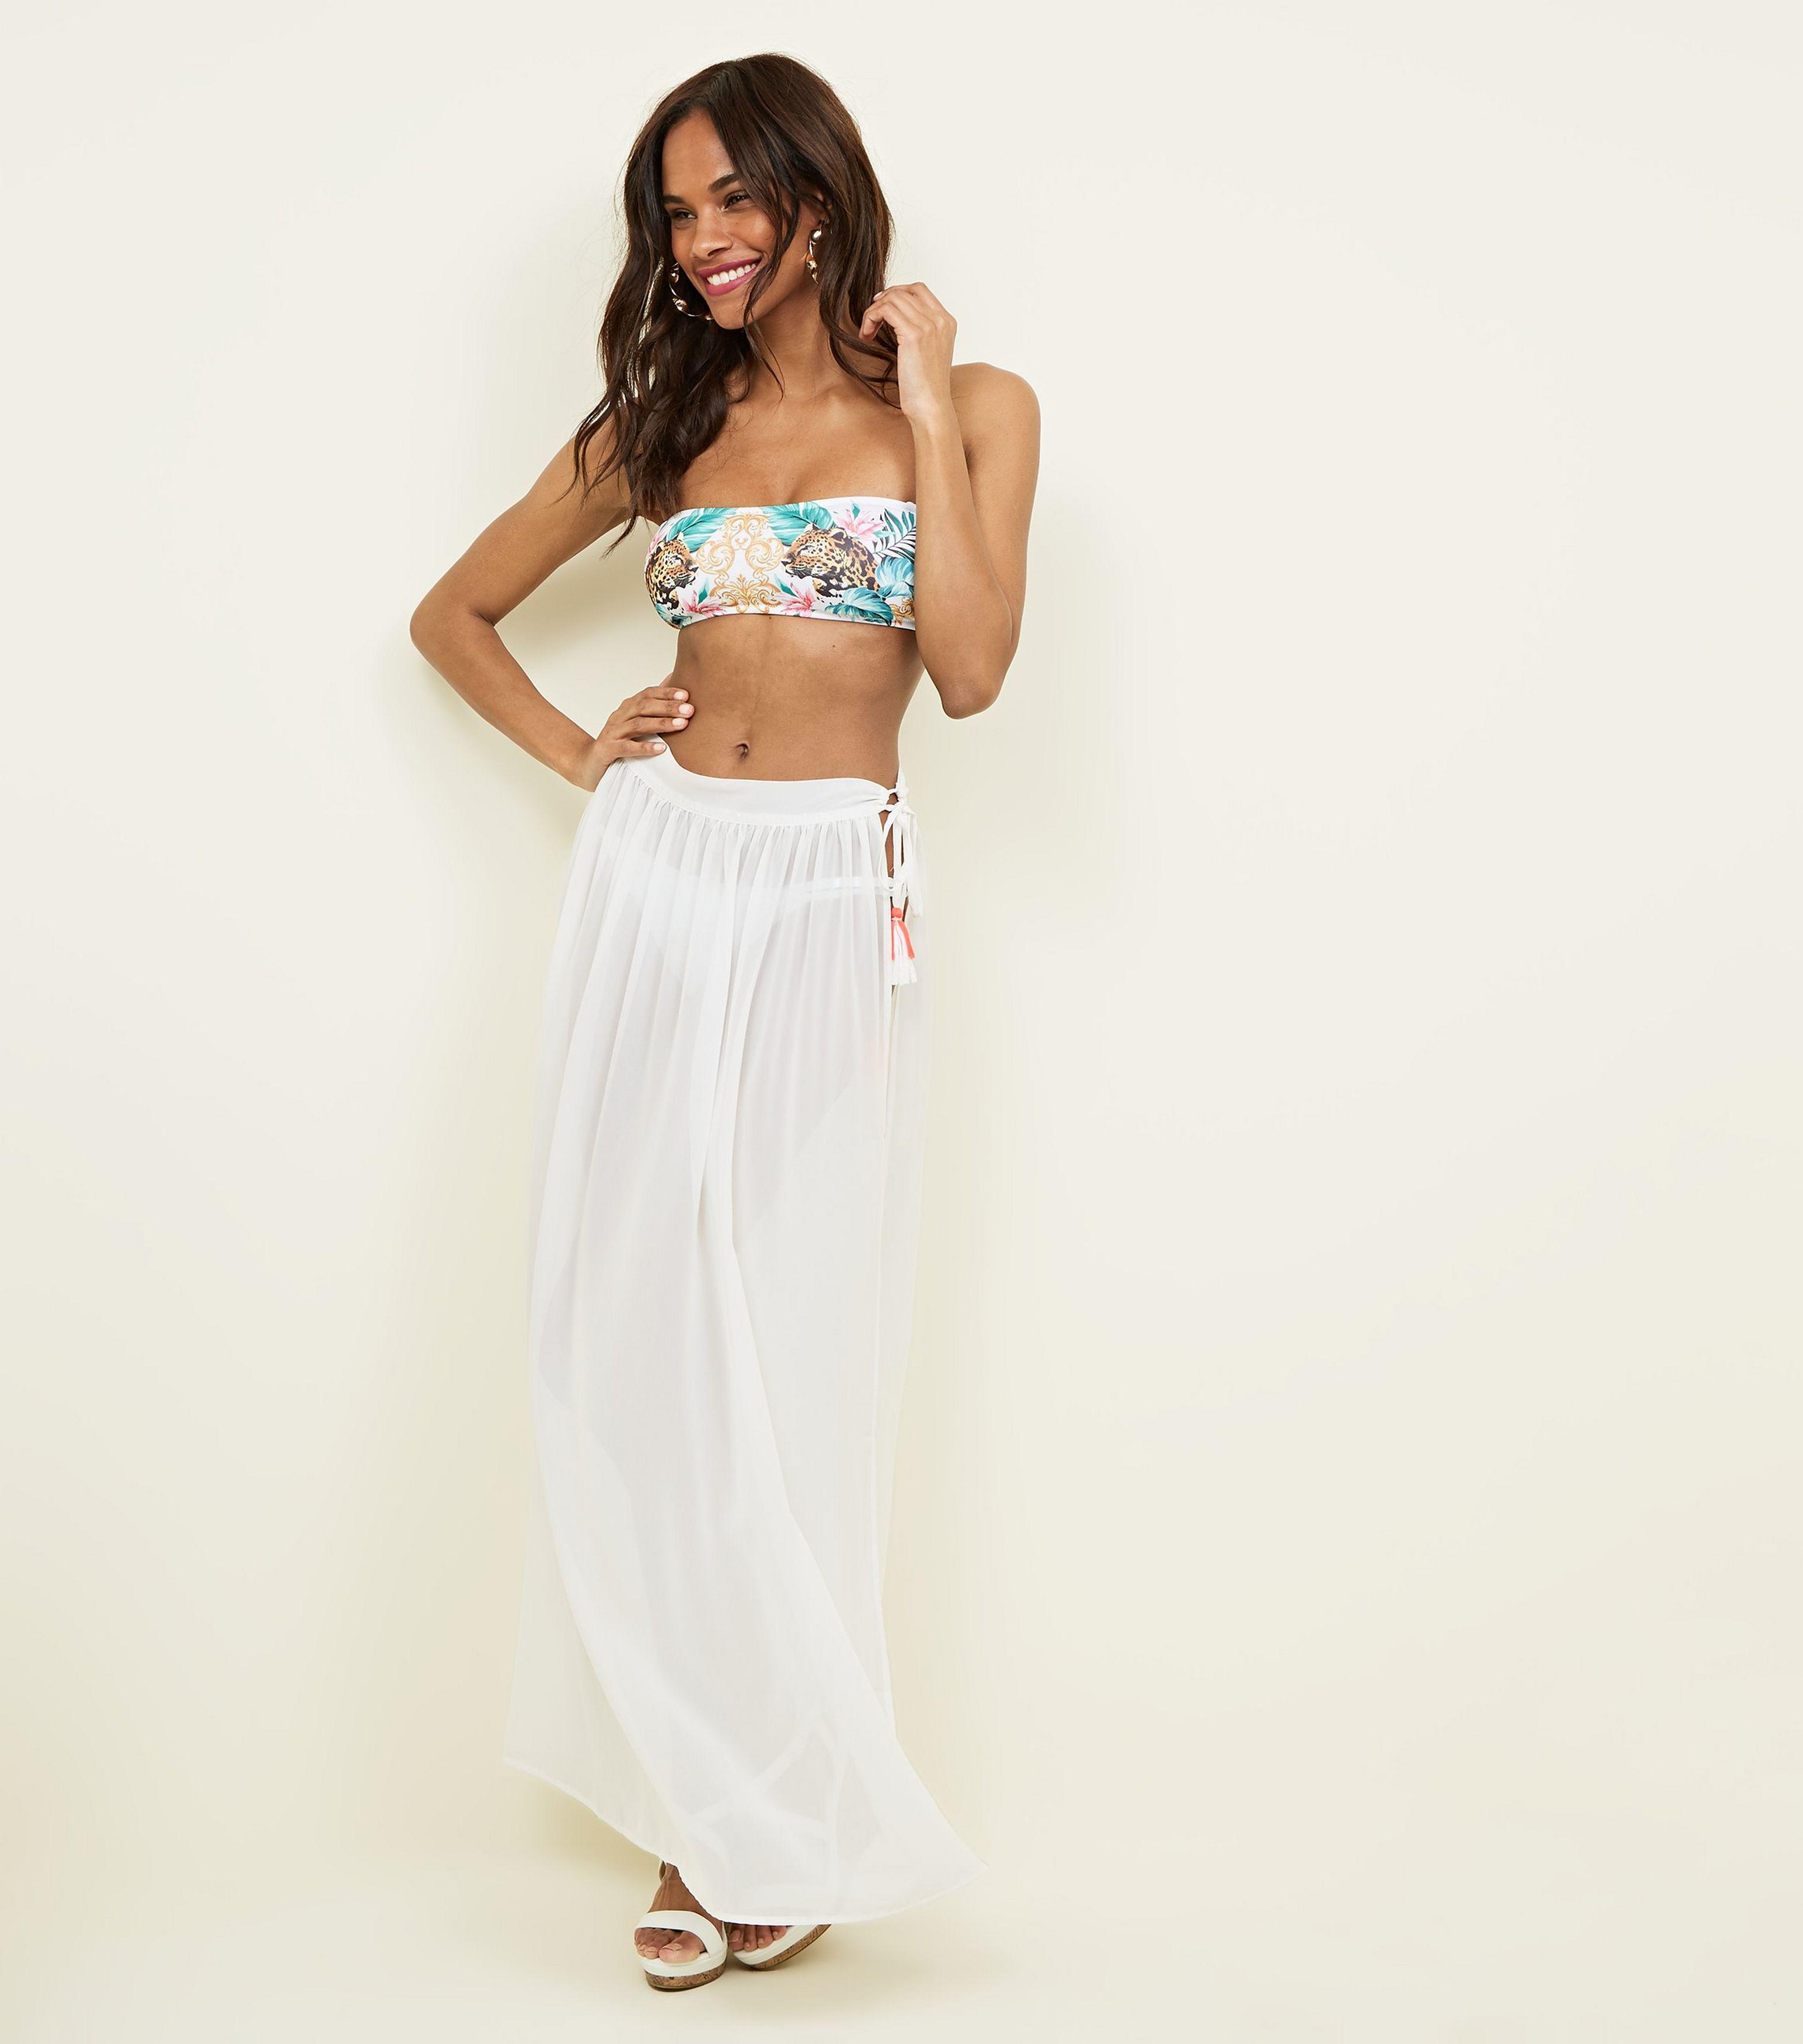 dc915edd76 New Look White Beach Tie Side Sarong in White - Lyst